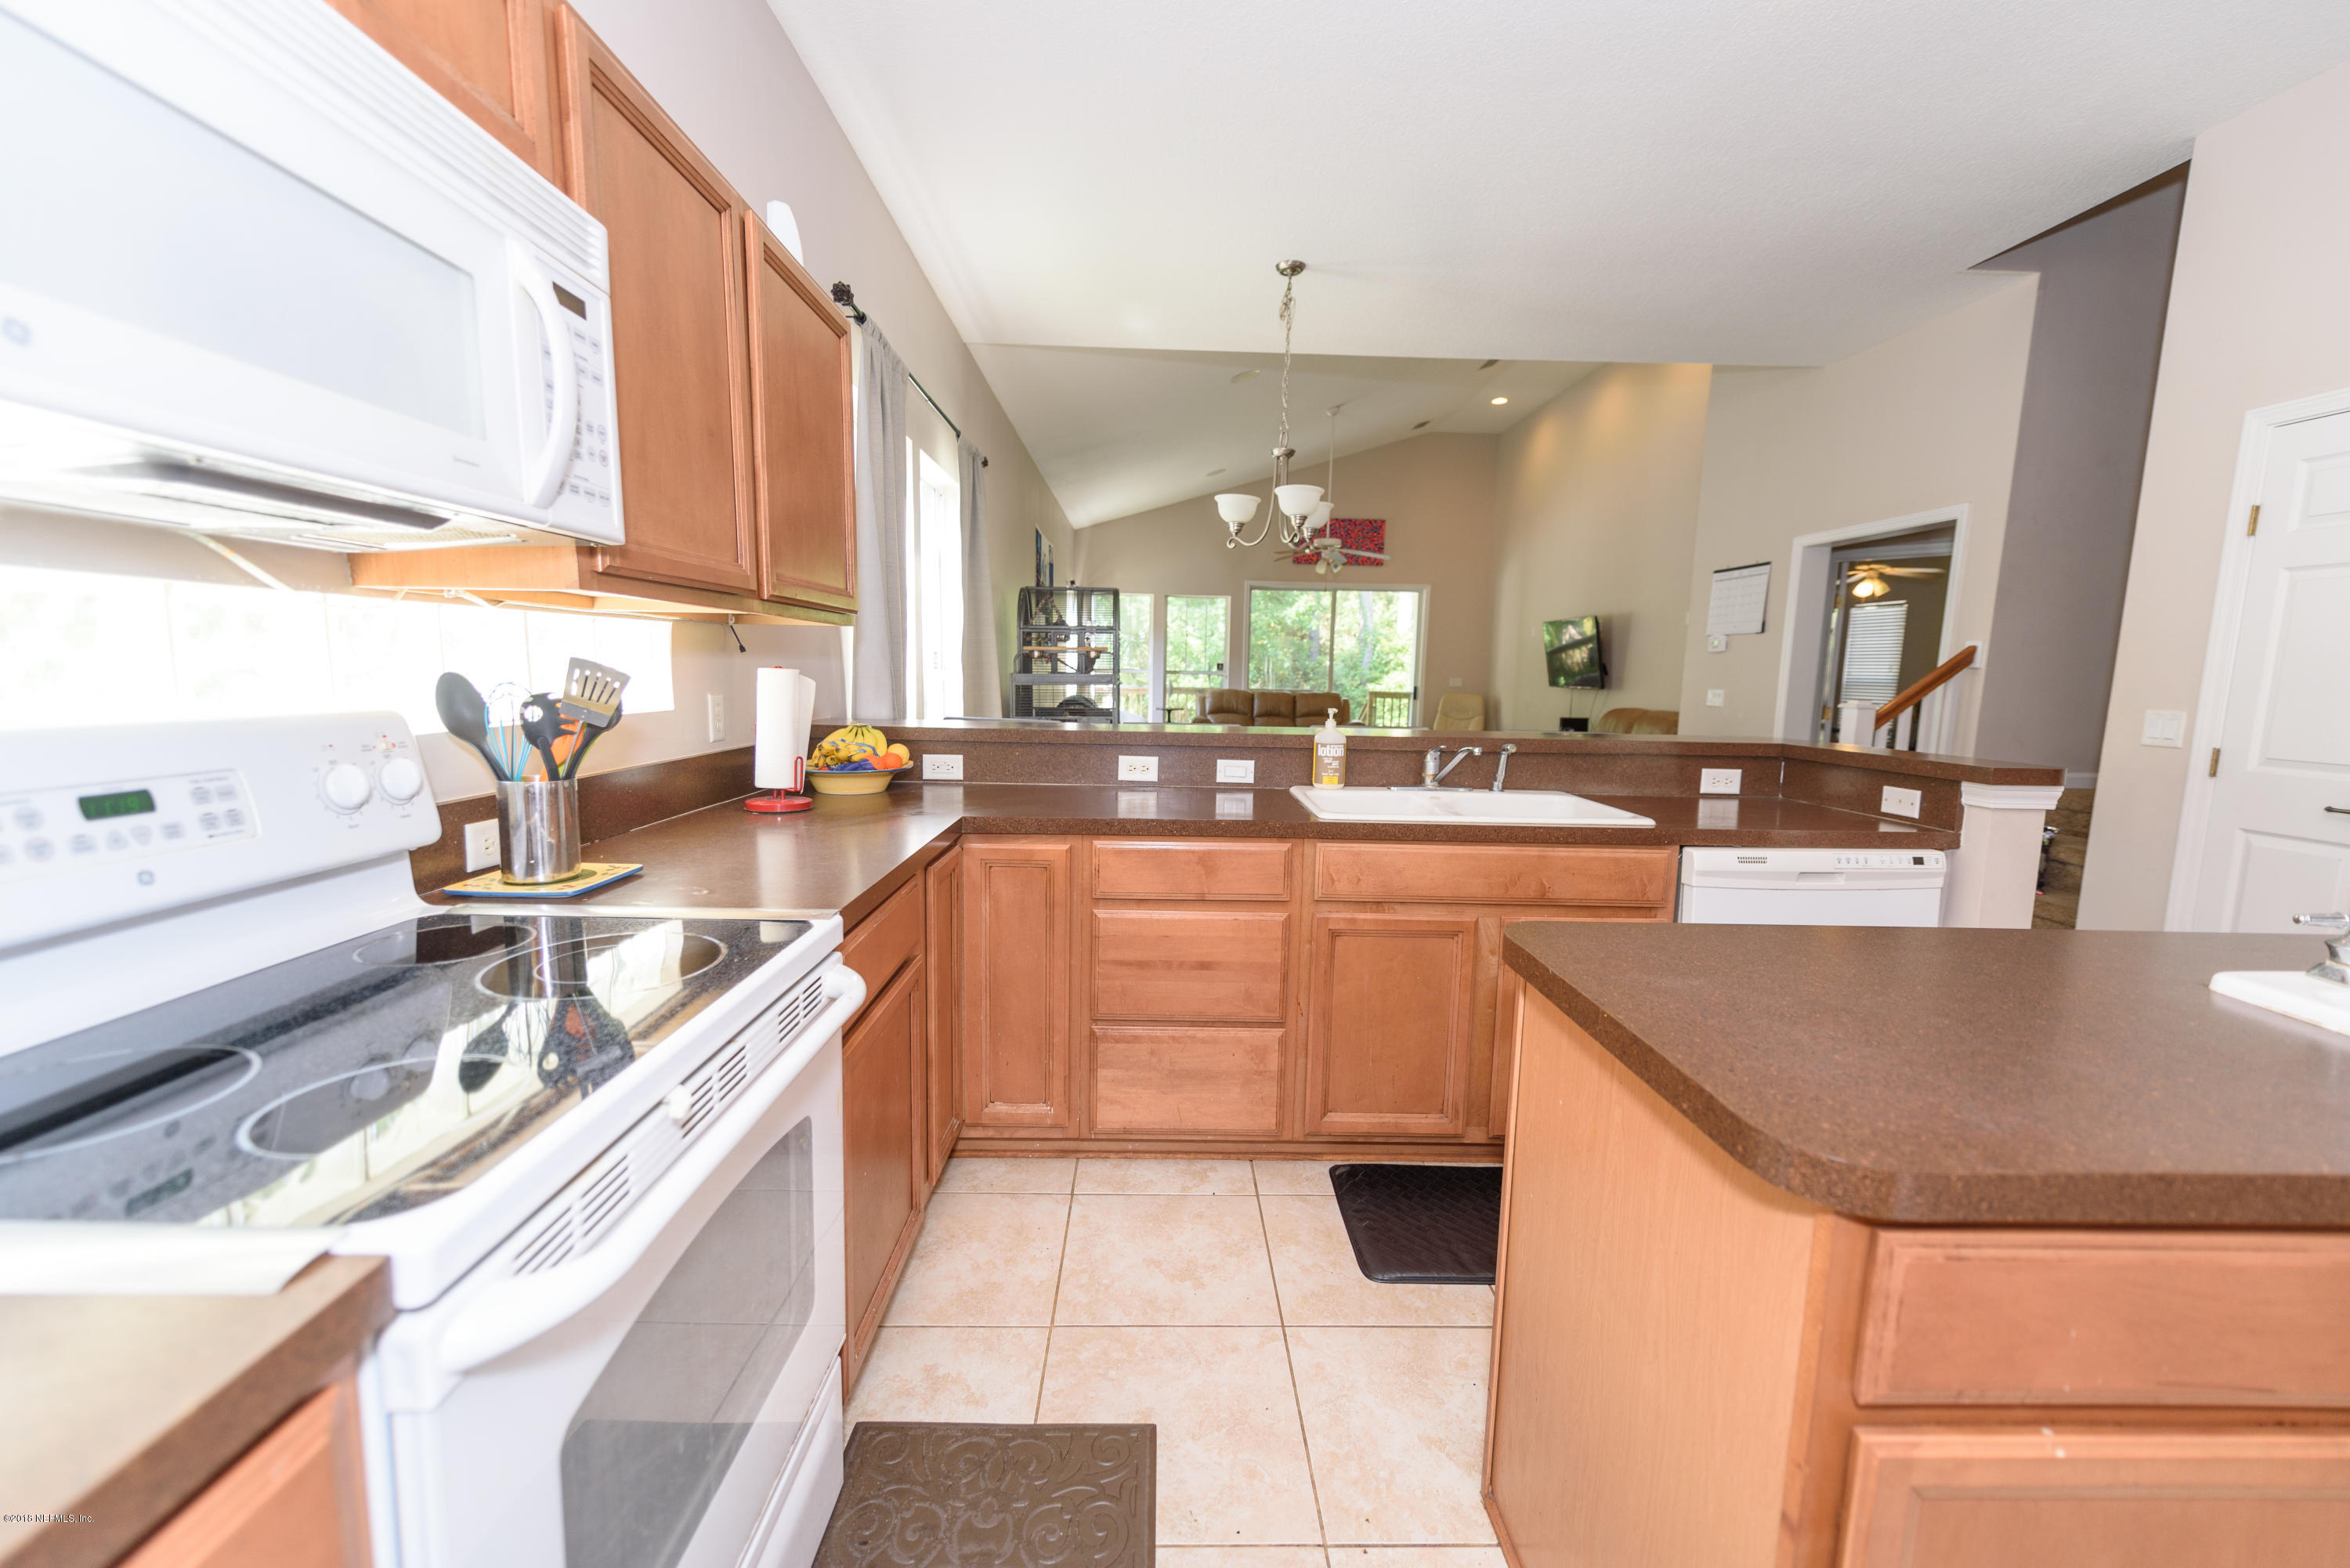 880 PARADISE, ATLANTIC BEACH, FLORIDA 32233, 4 Bedrooms Bedrooms, ,3 BathroomsBathrooms,Residential - single family,For sale,PARADISE,958931